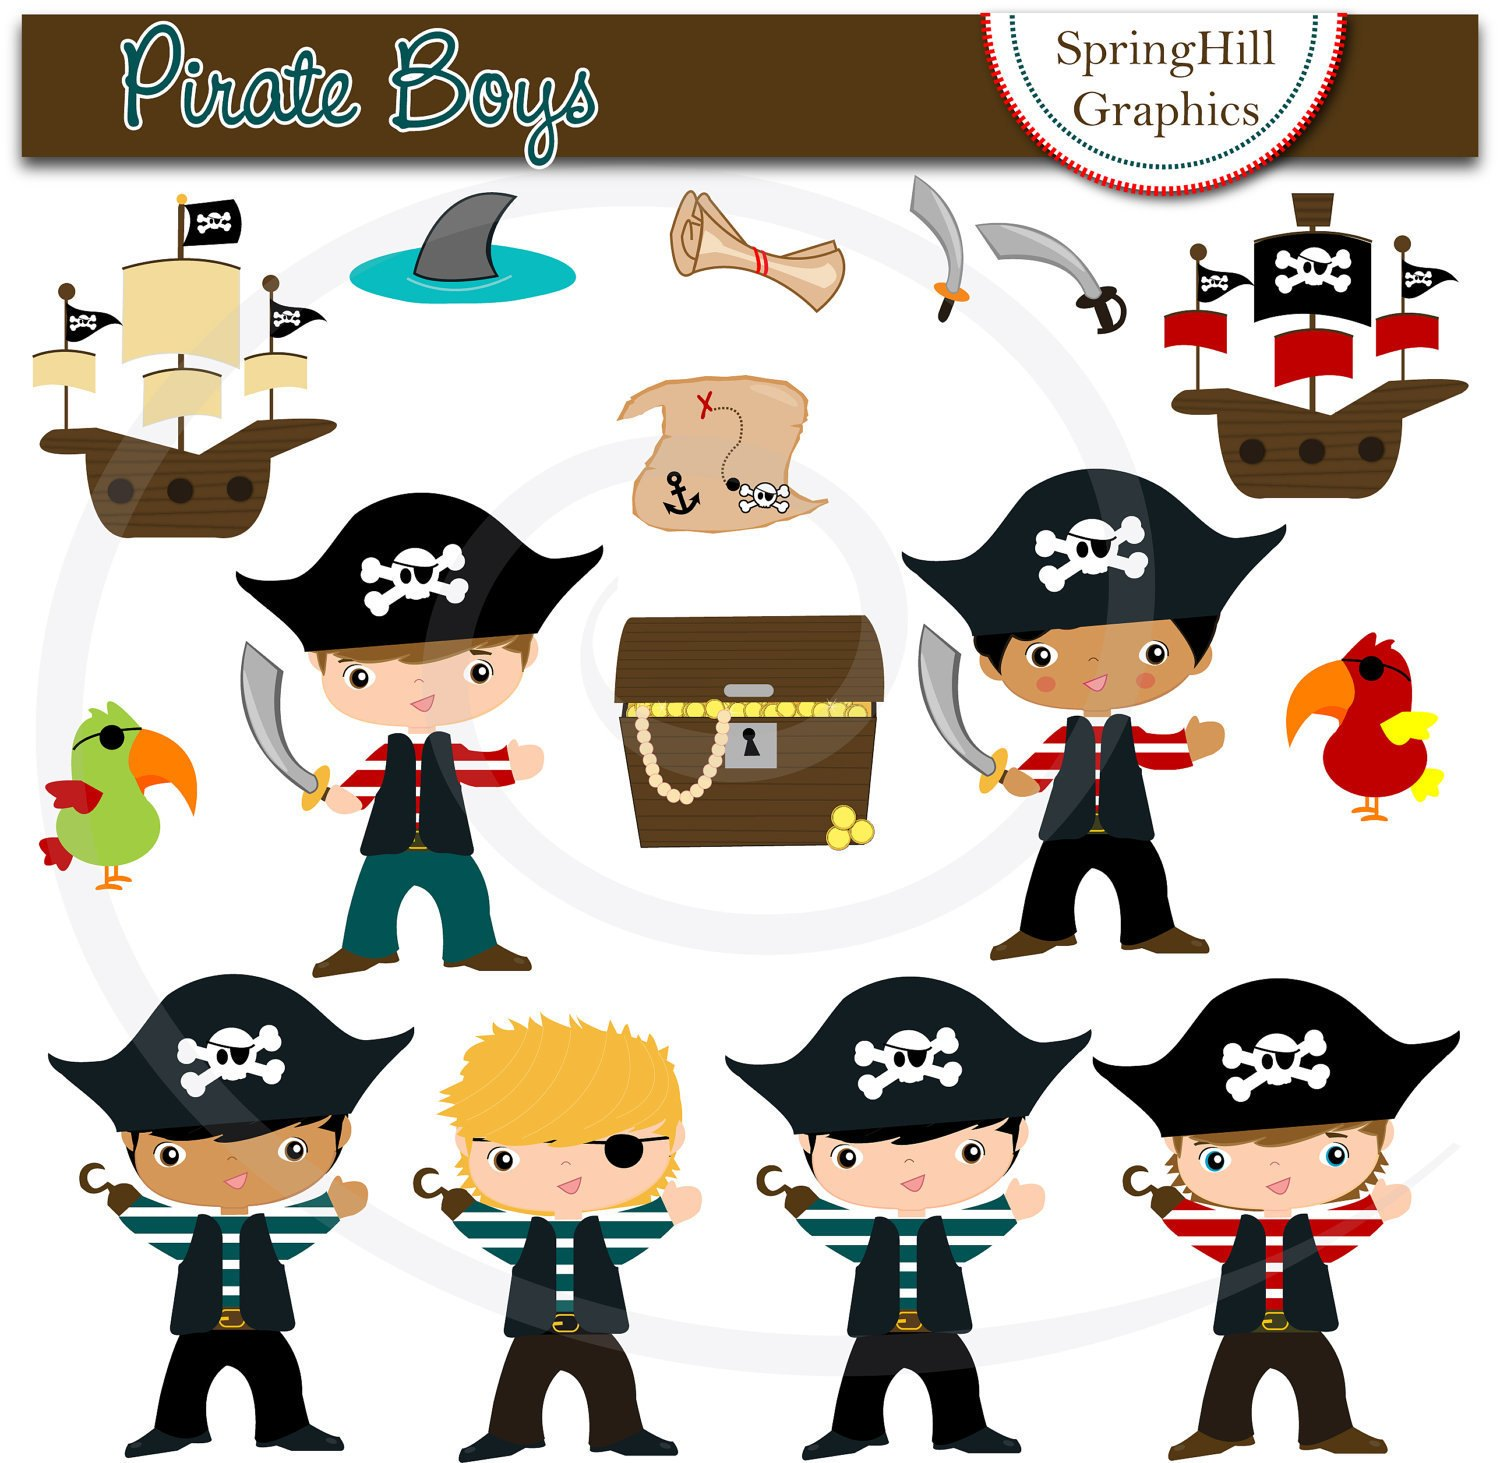 Baby pirate clipart royalty free library Pirate baby clipart 7 » Clipart Portal royalty free library